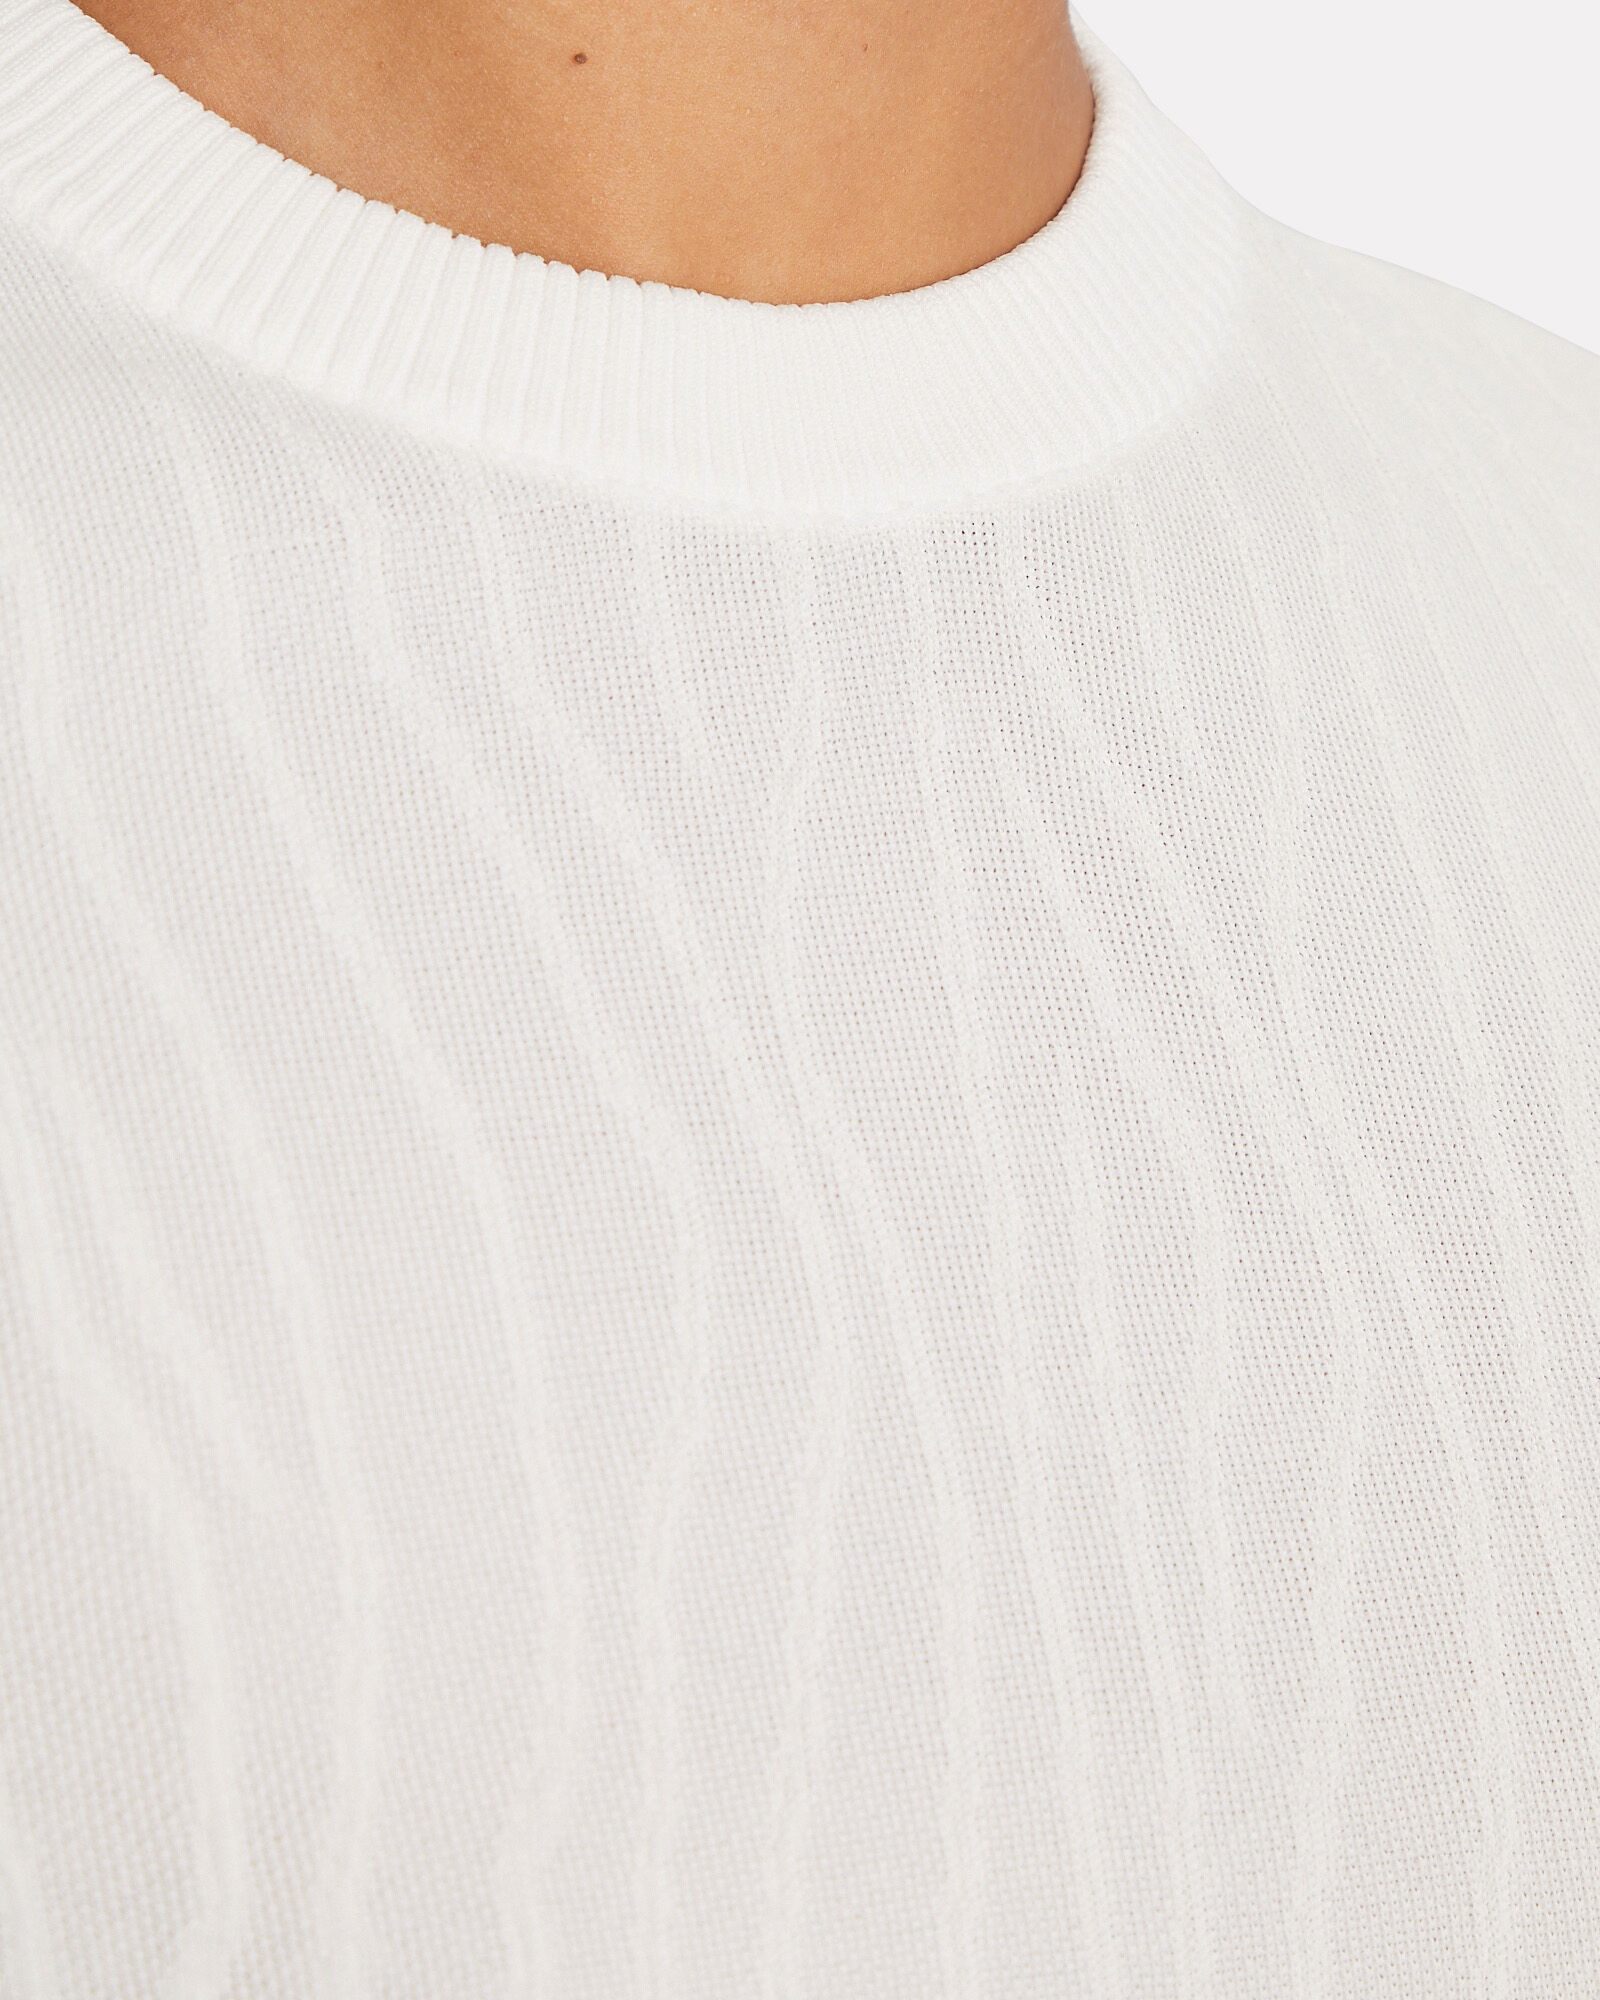 Crinkle Textured Knit Top, WHITE, hi-res